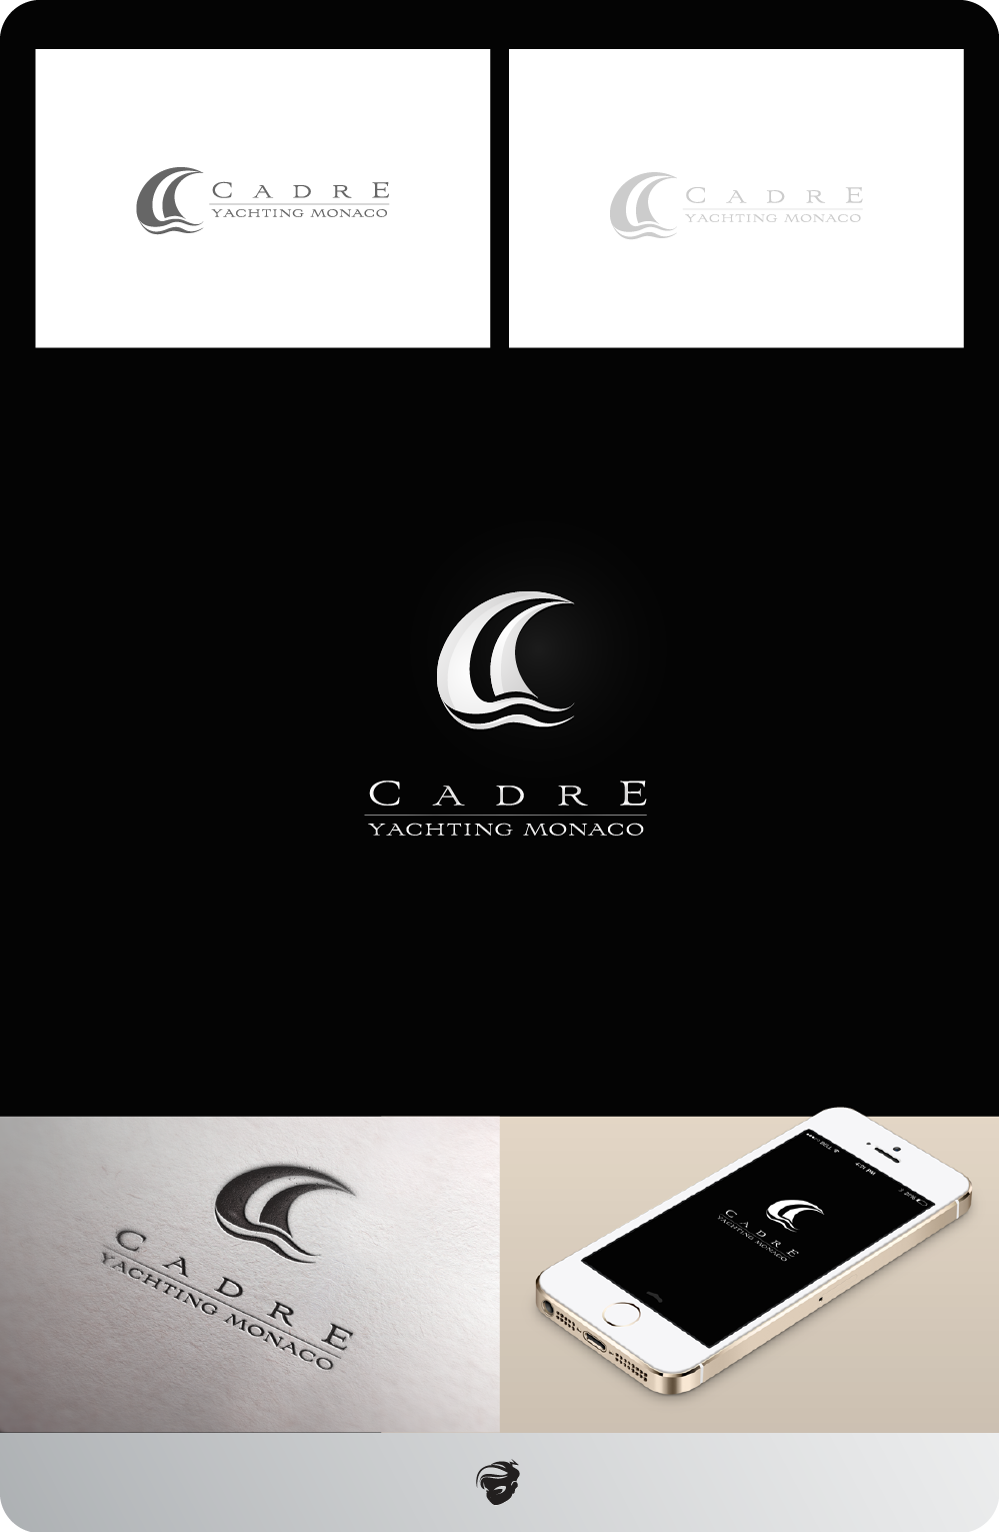 Logo Design by zesthar - Entry No. 364 in the Logo Design Contest New Logo Design for Cadre Yachting Monaco.